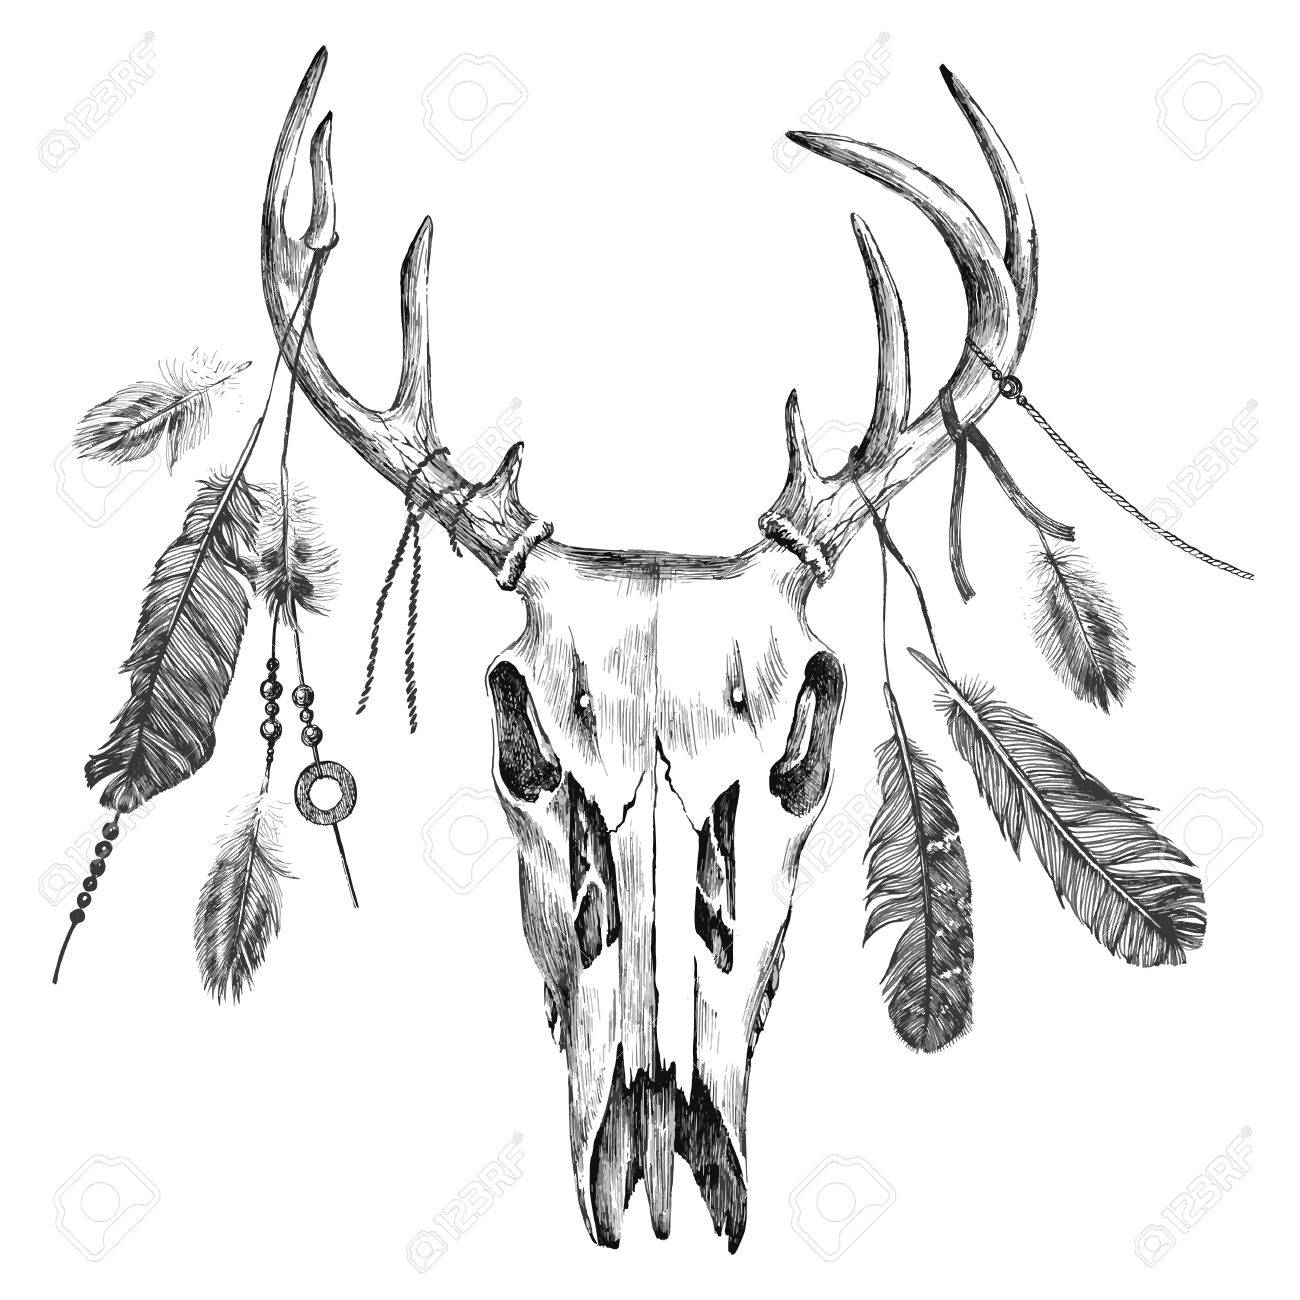 Hand drawn black and white illustration with deer scull and feathers - 48490985